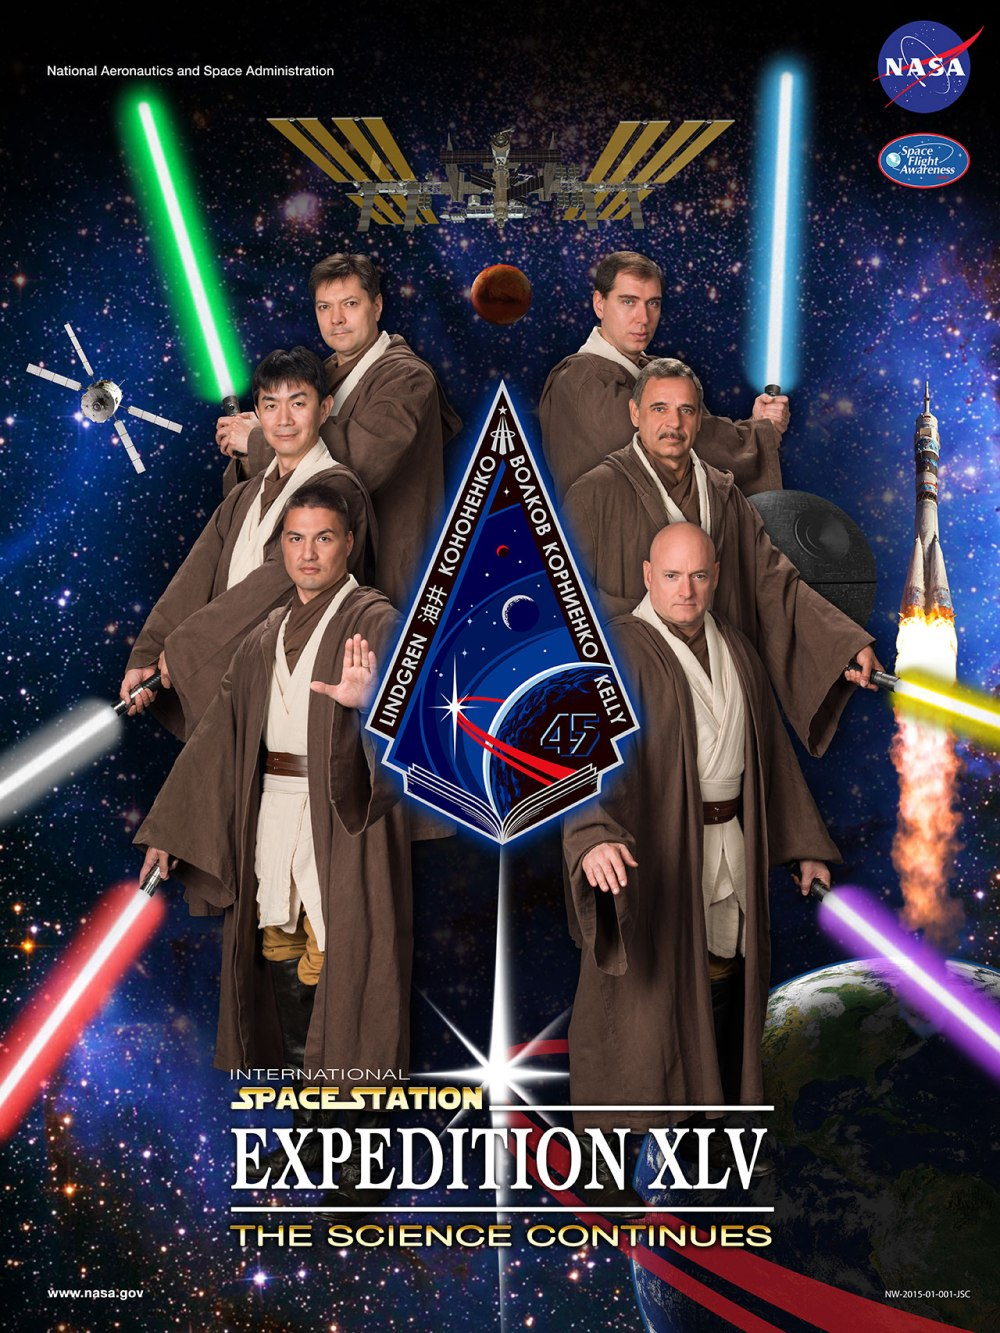 The Expedition 45 team poster has astronauts and cosmonauts trading flight suits for Jedi robes.